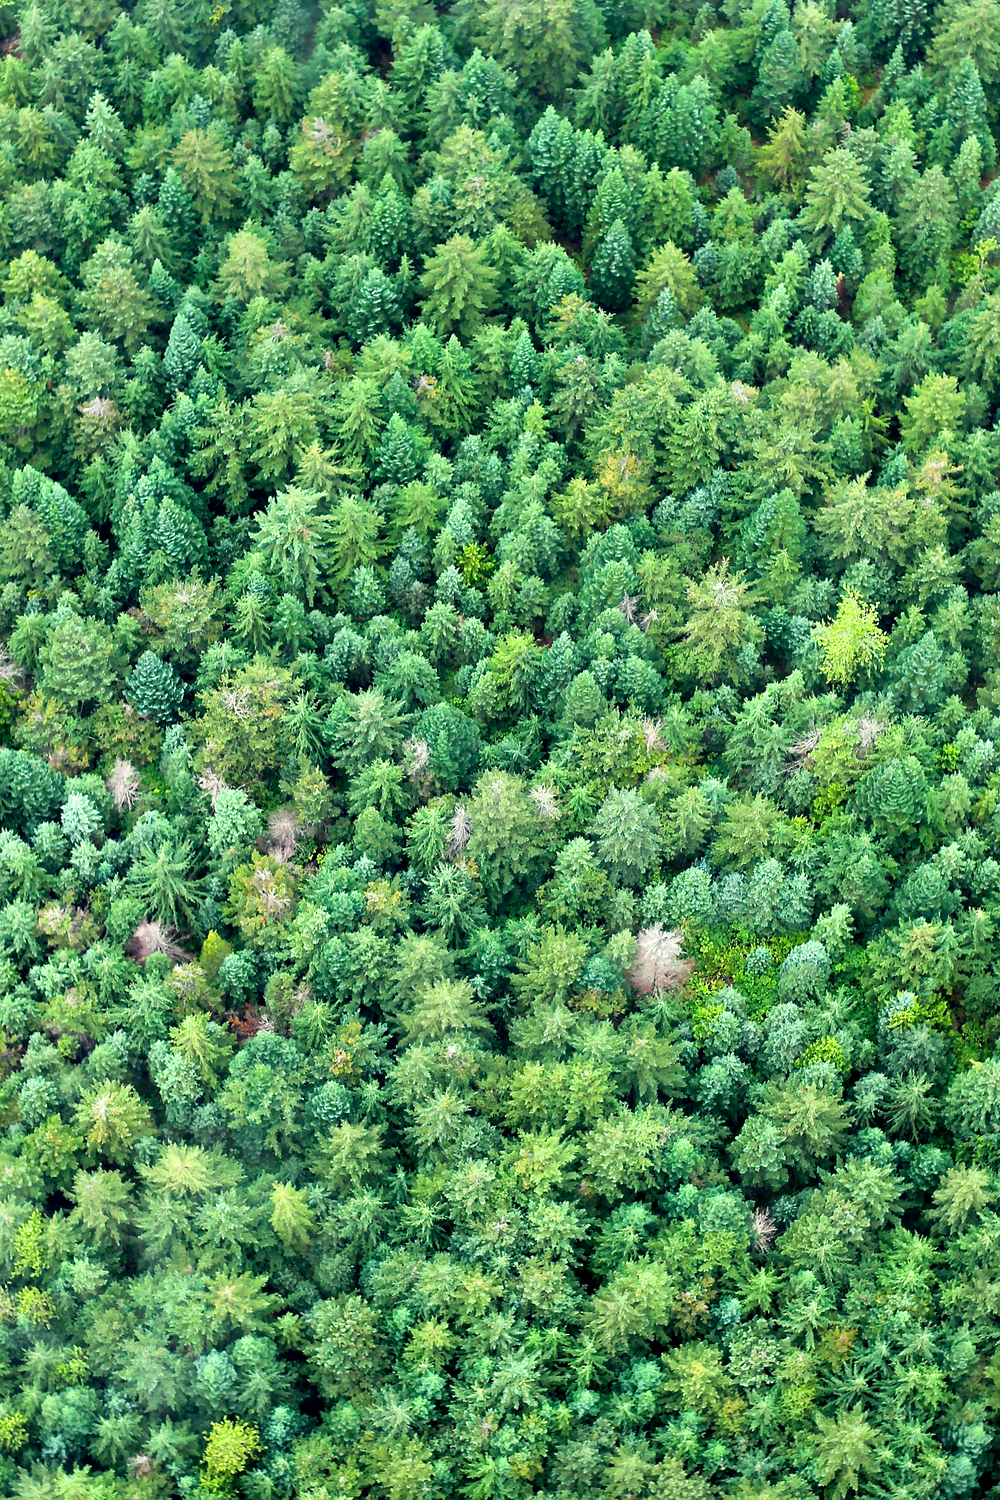 evergreen forest from above (green tree photo)